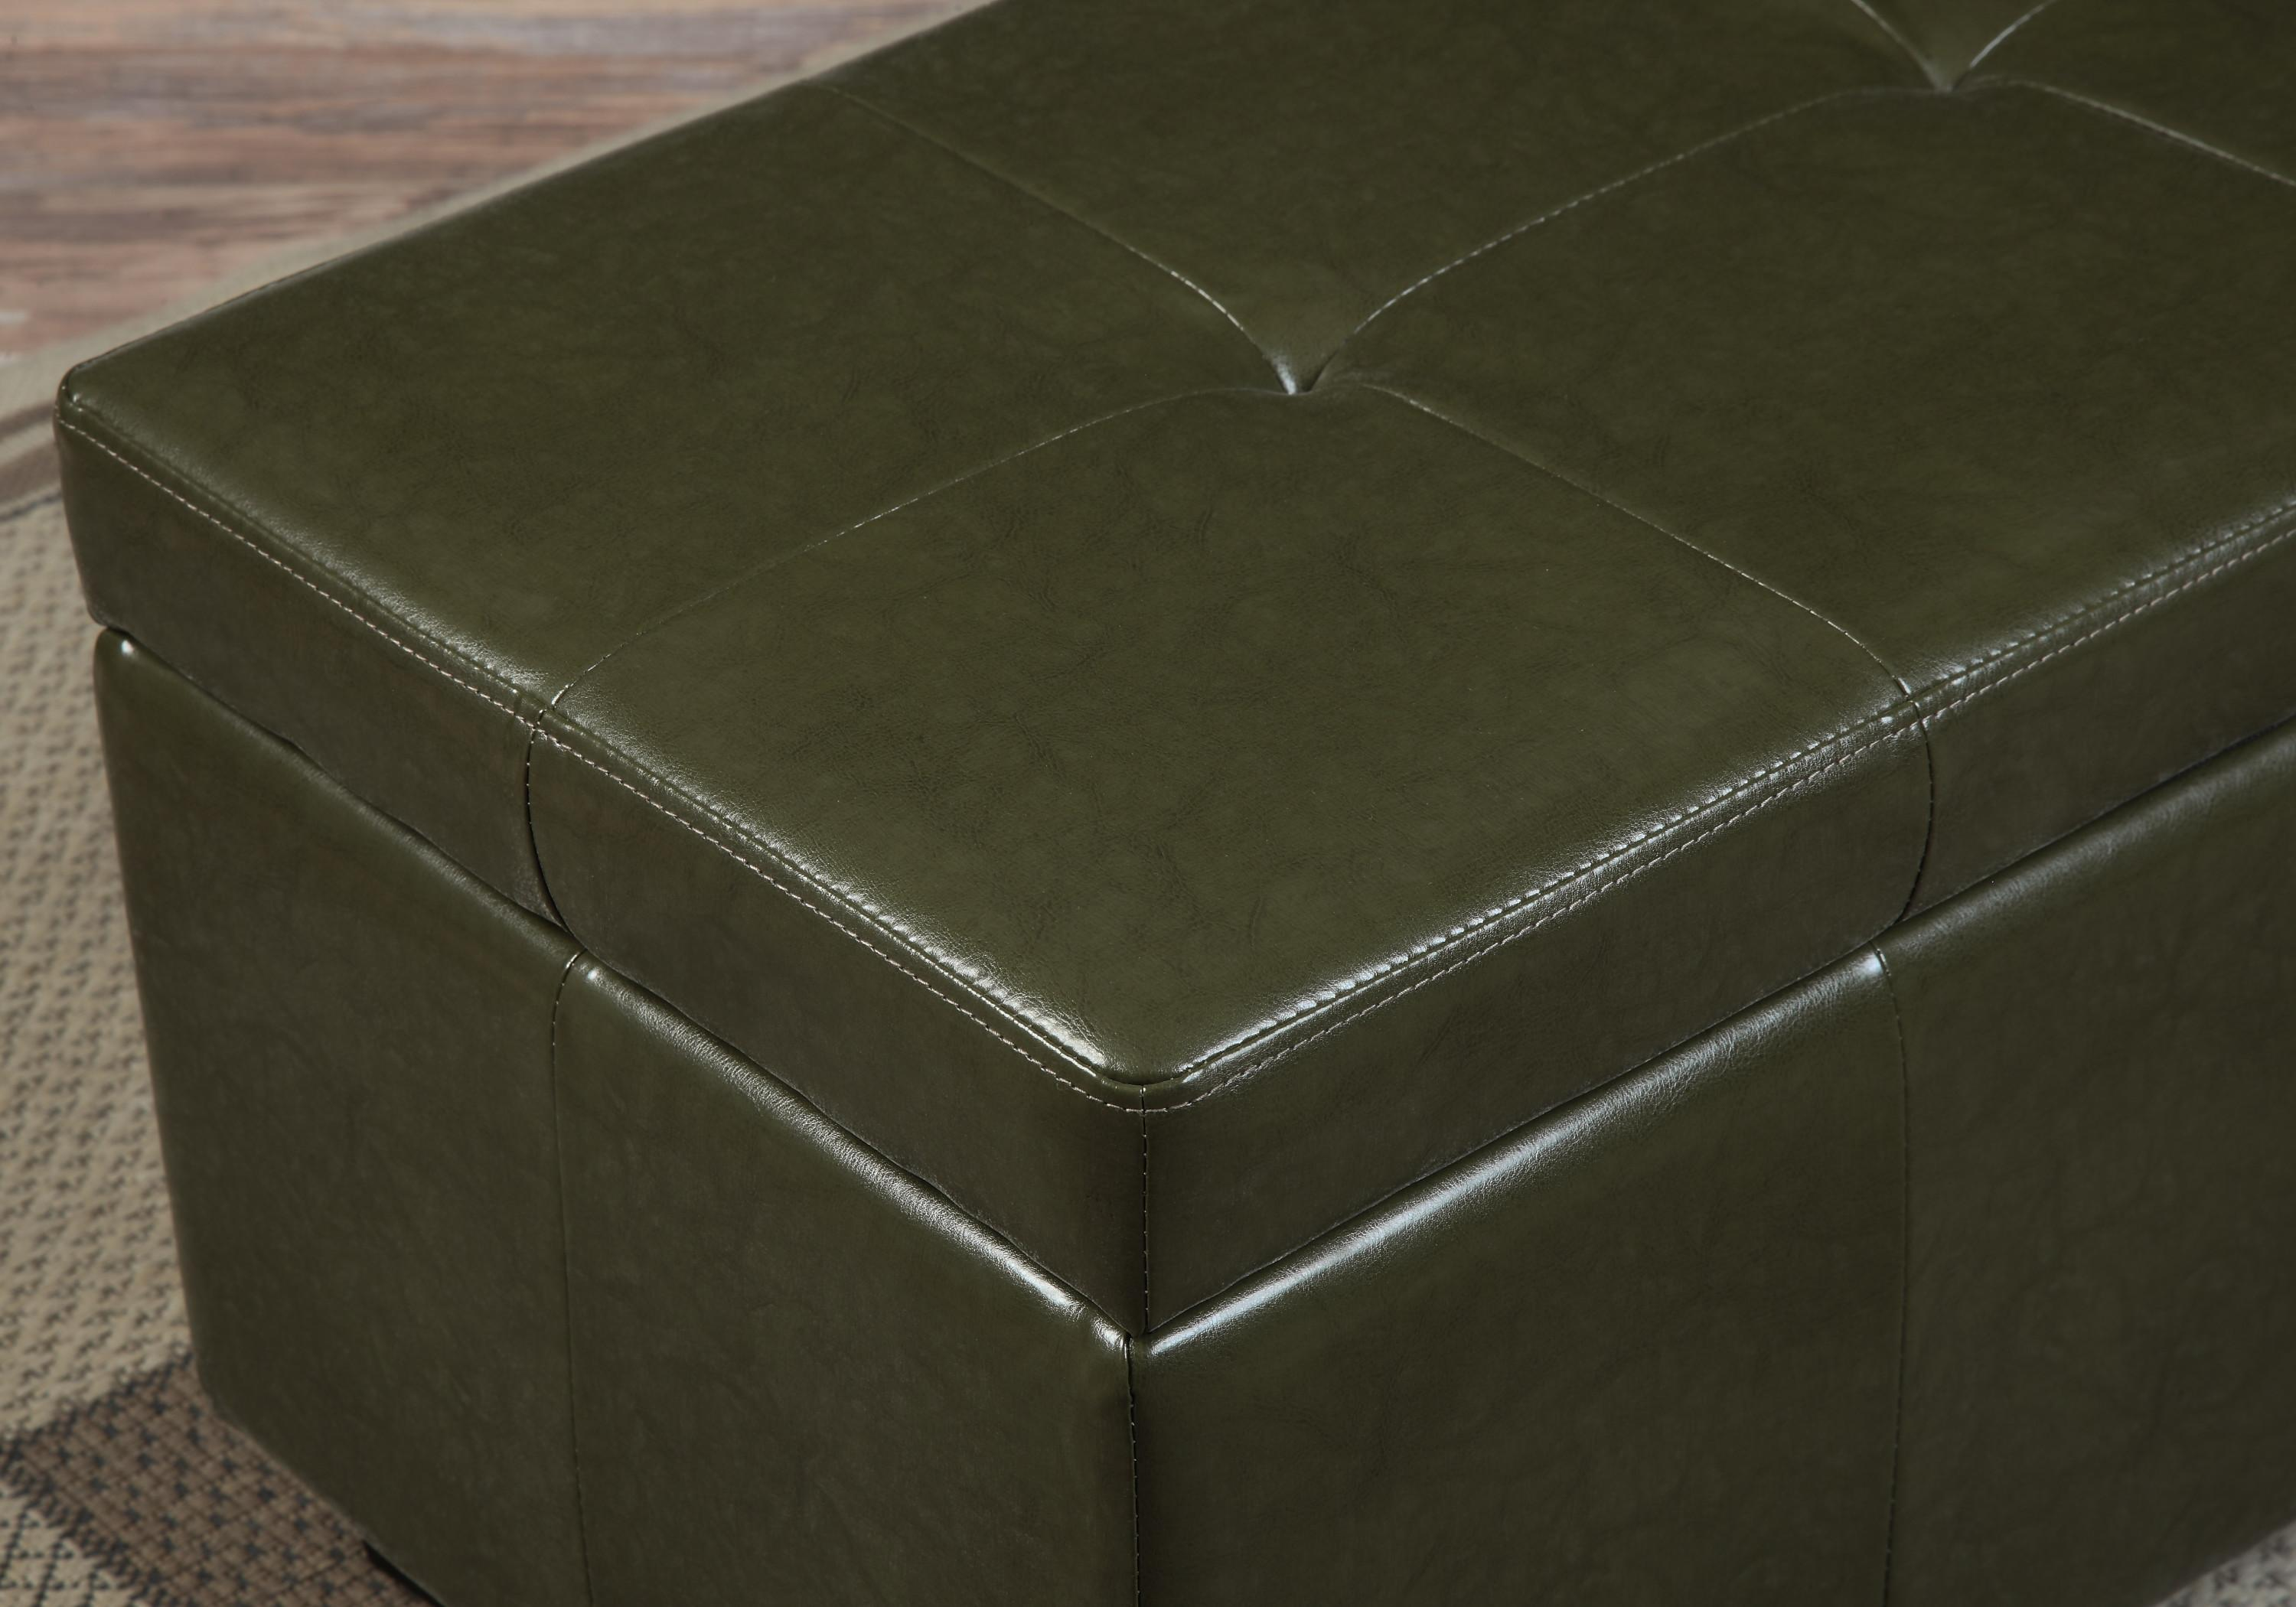 Amazon.com: Simpli Home Castleford Rectangular Storage Ottoman Bench, Large, Deep Olive Green